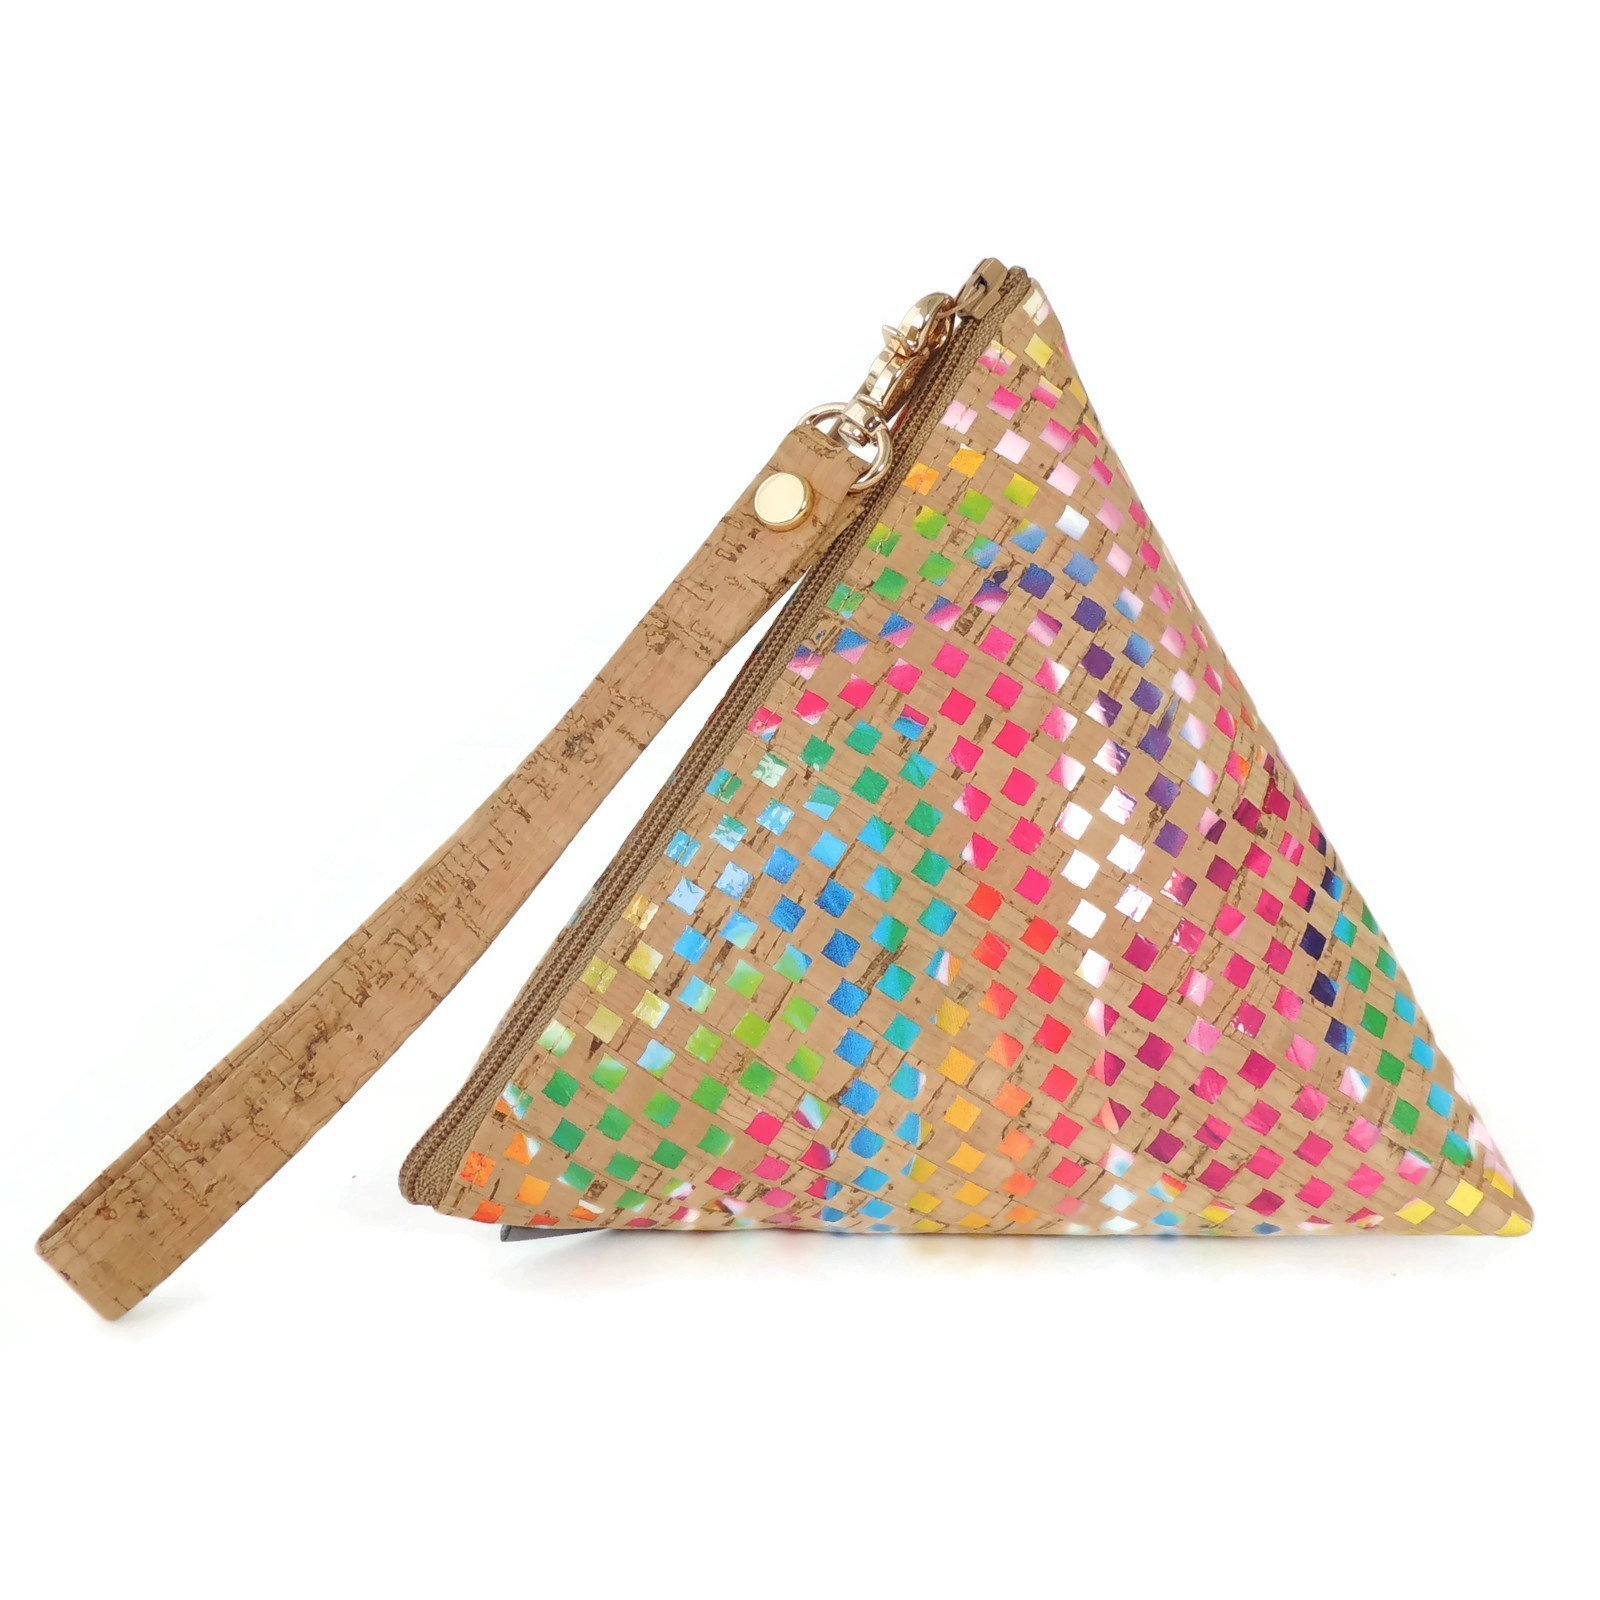 Triangle Cork Makeup Pouch or Clutch Bag in Multicolor